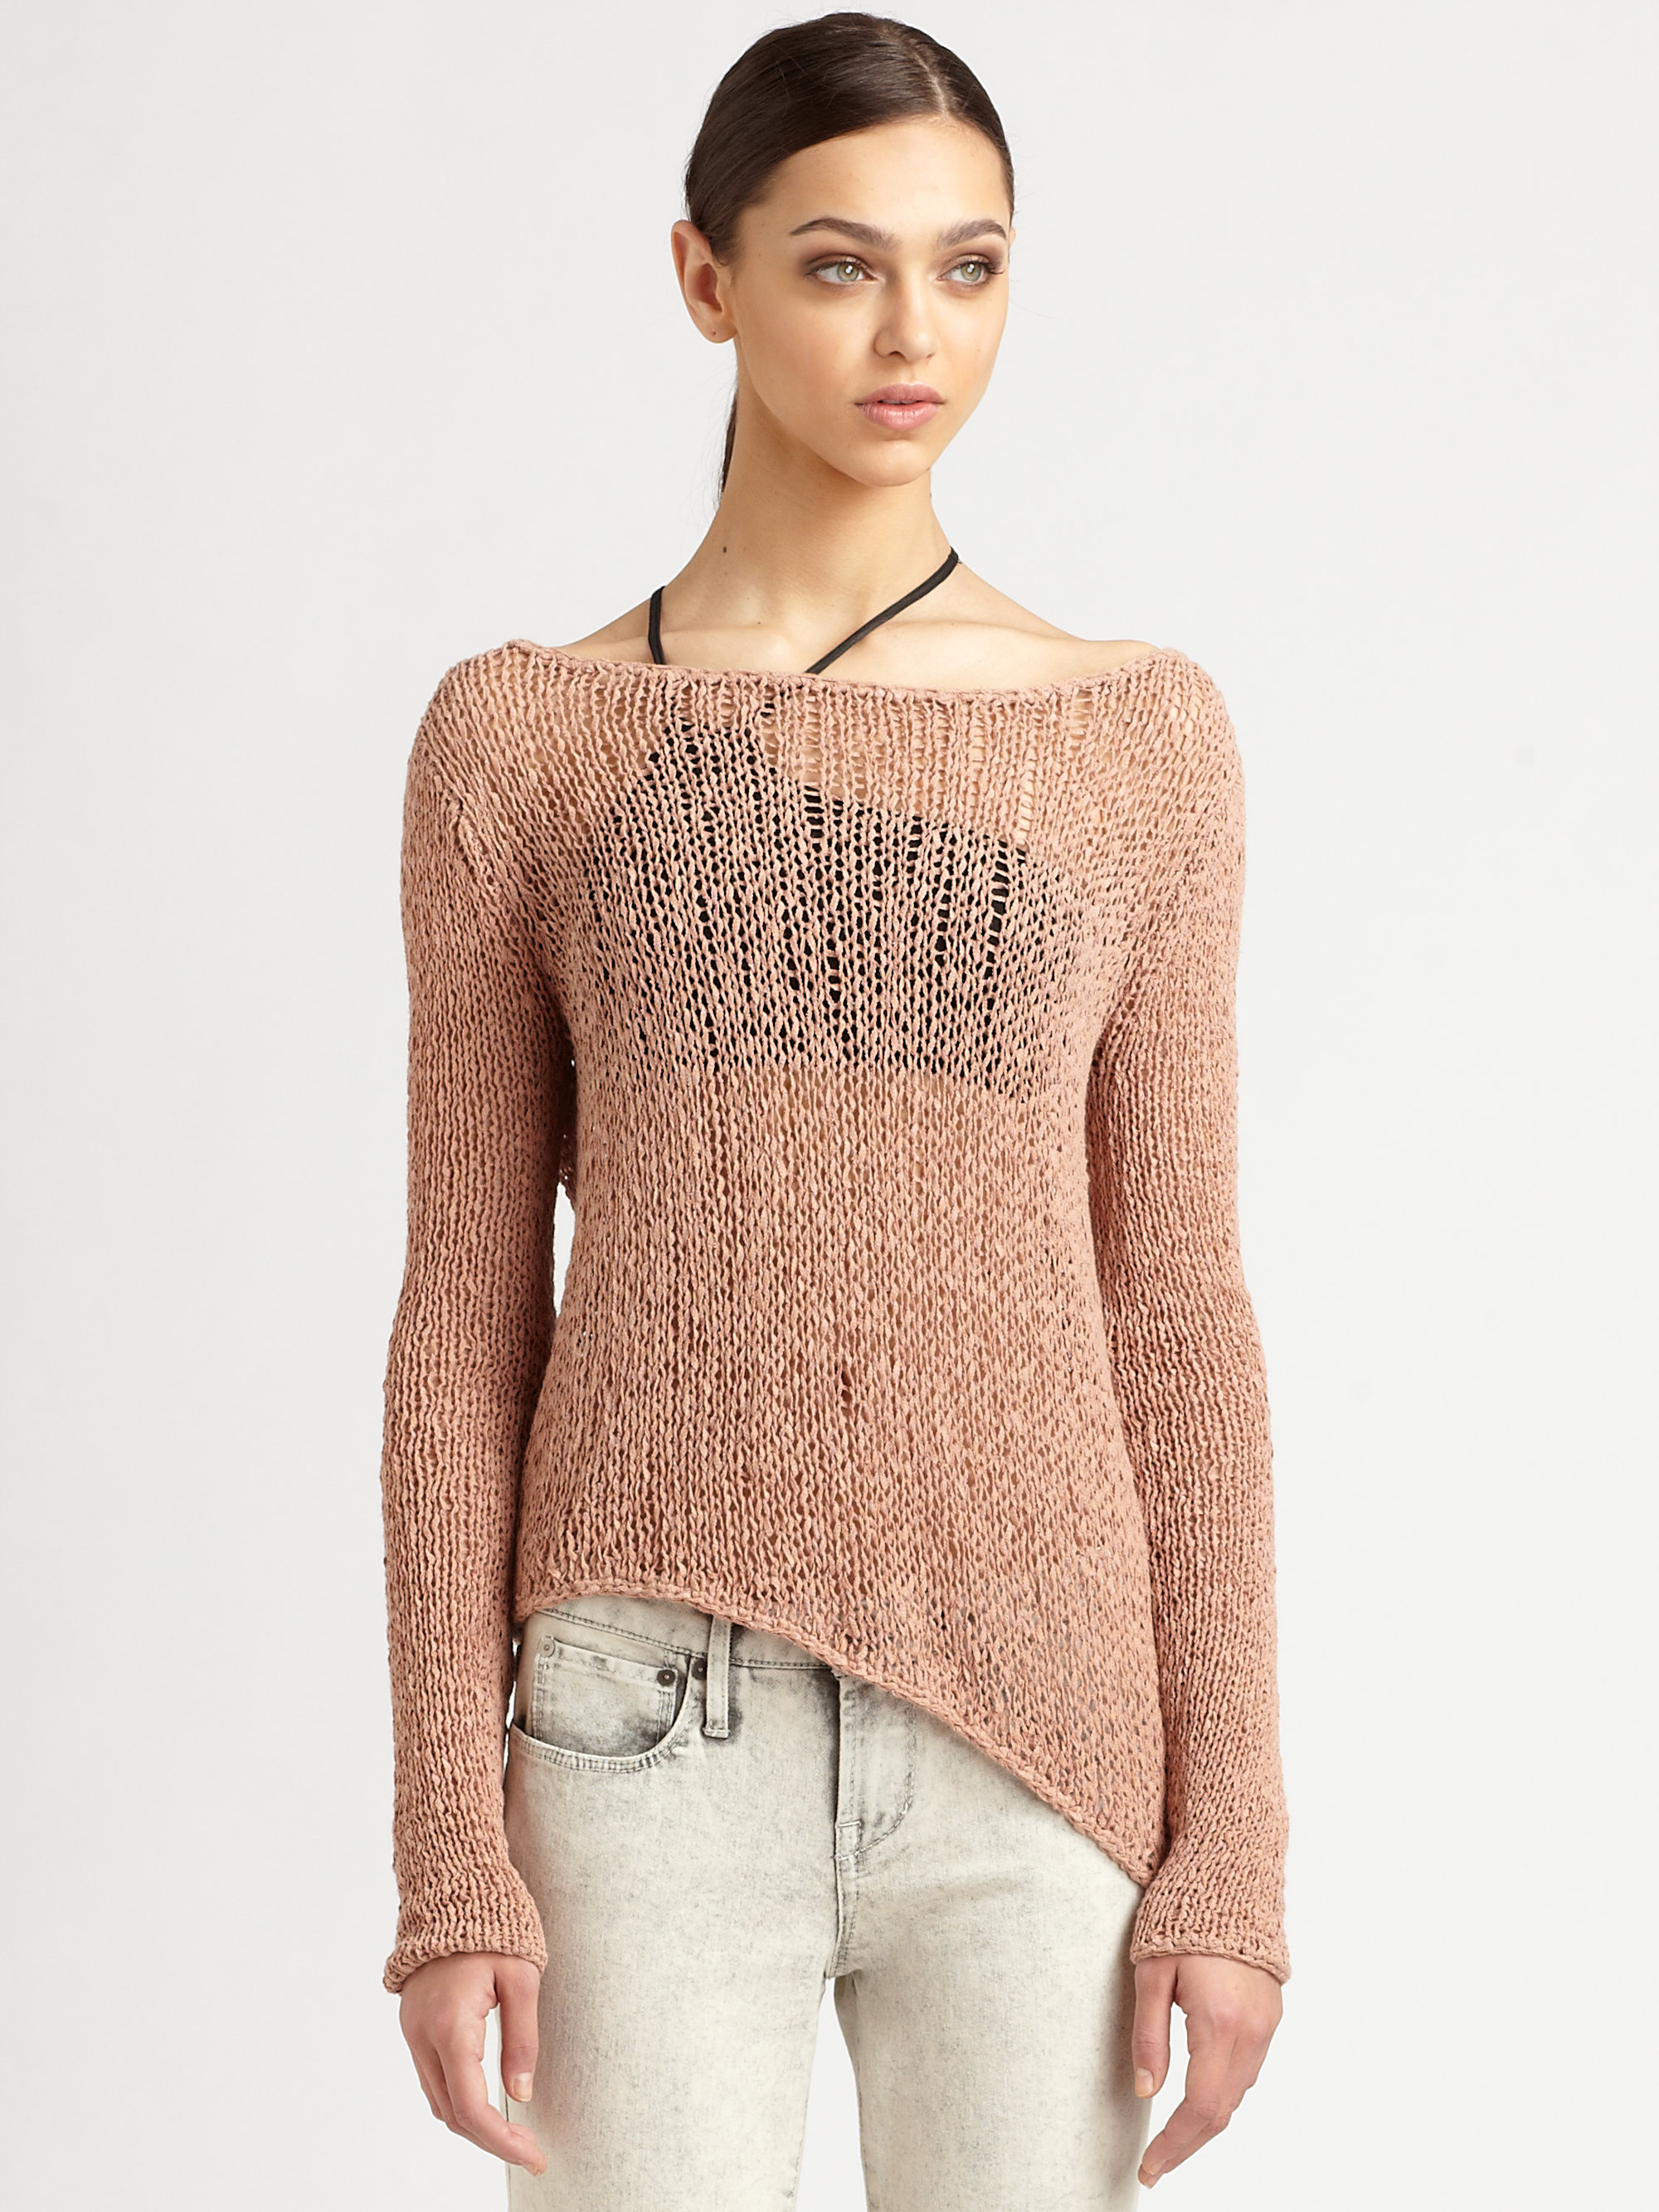 Lyst Helmut Lang Textured Tape Yarn Sweater In Brown